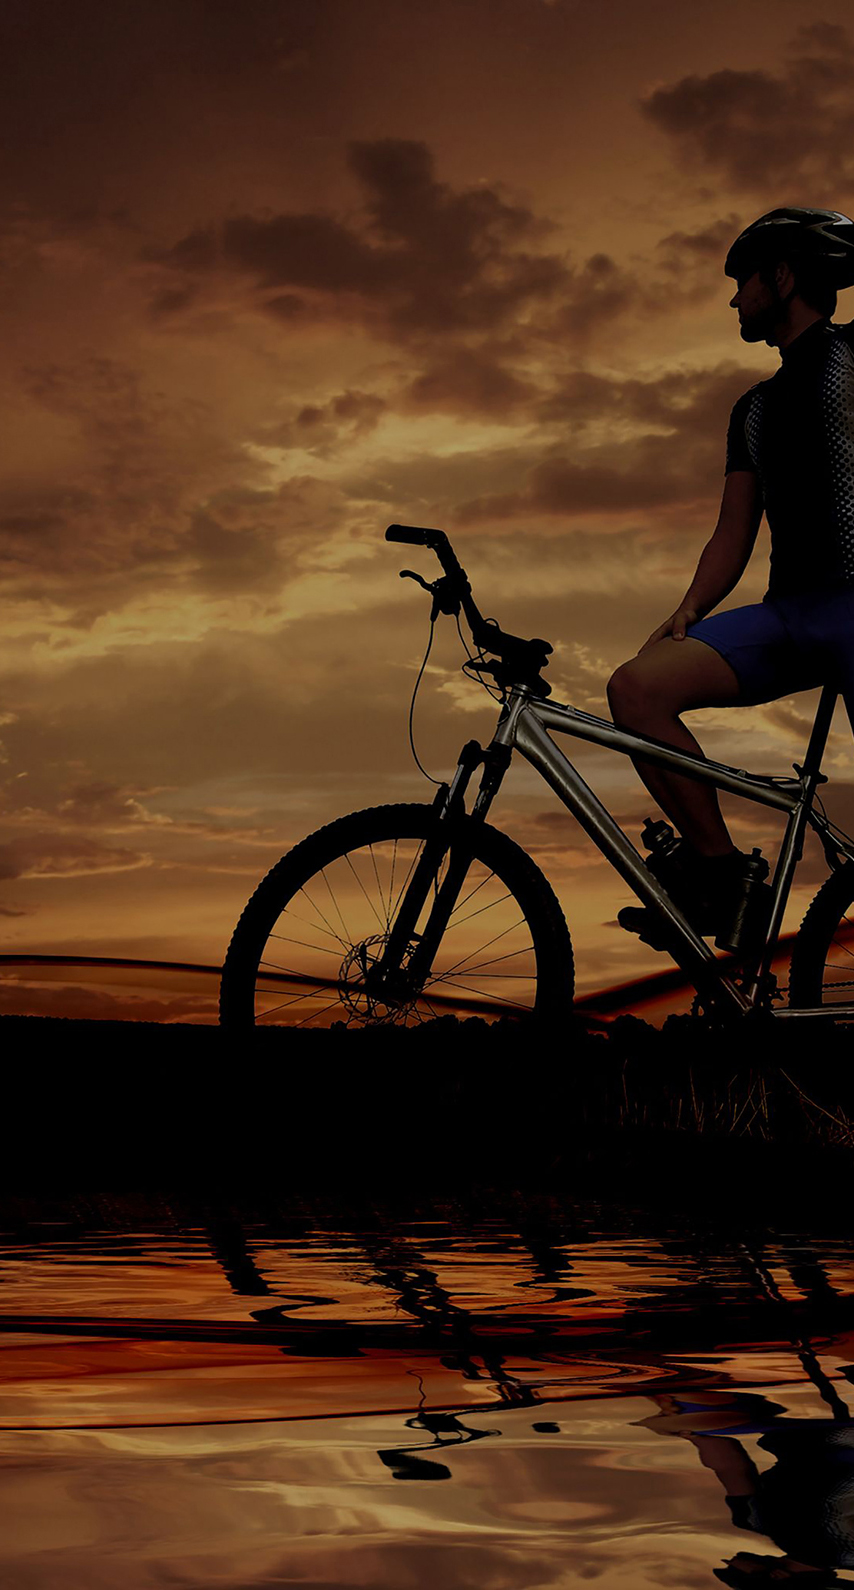 dusk, silhouette, vehicle, recreation, leisure, lifestyle, backlit, silhouetted, seated